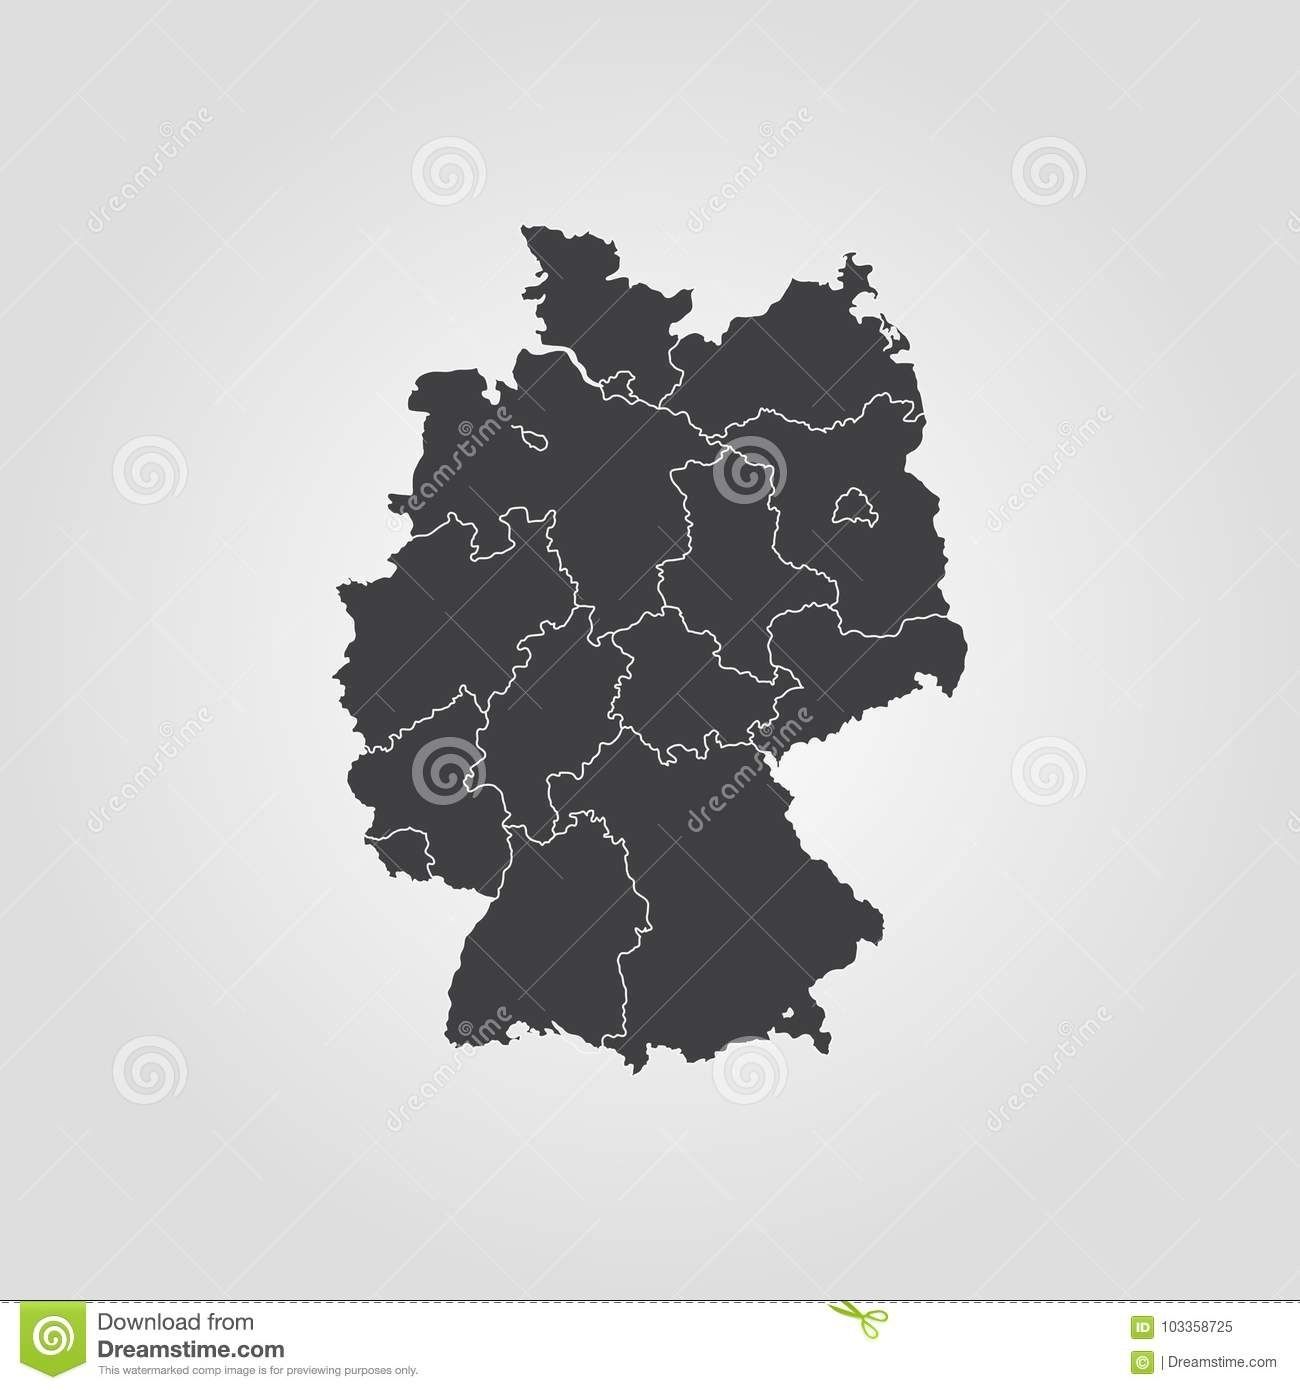 Map Of Germany Stock Illustration. Illustration Of European - 103358725 with regard to Germany Map Download Free